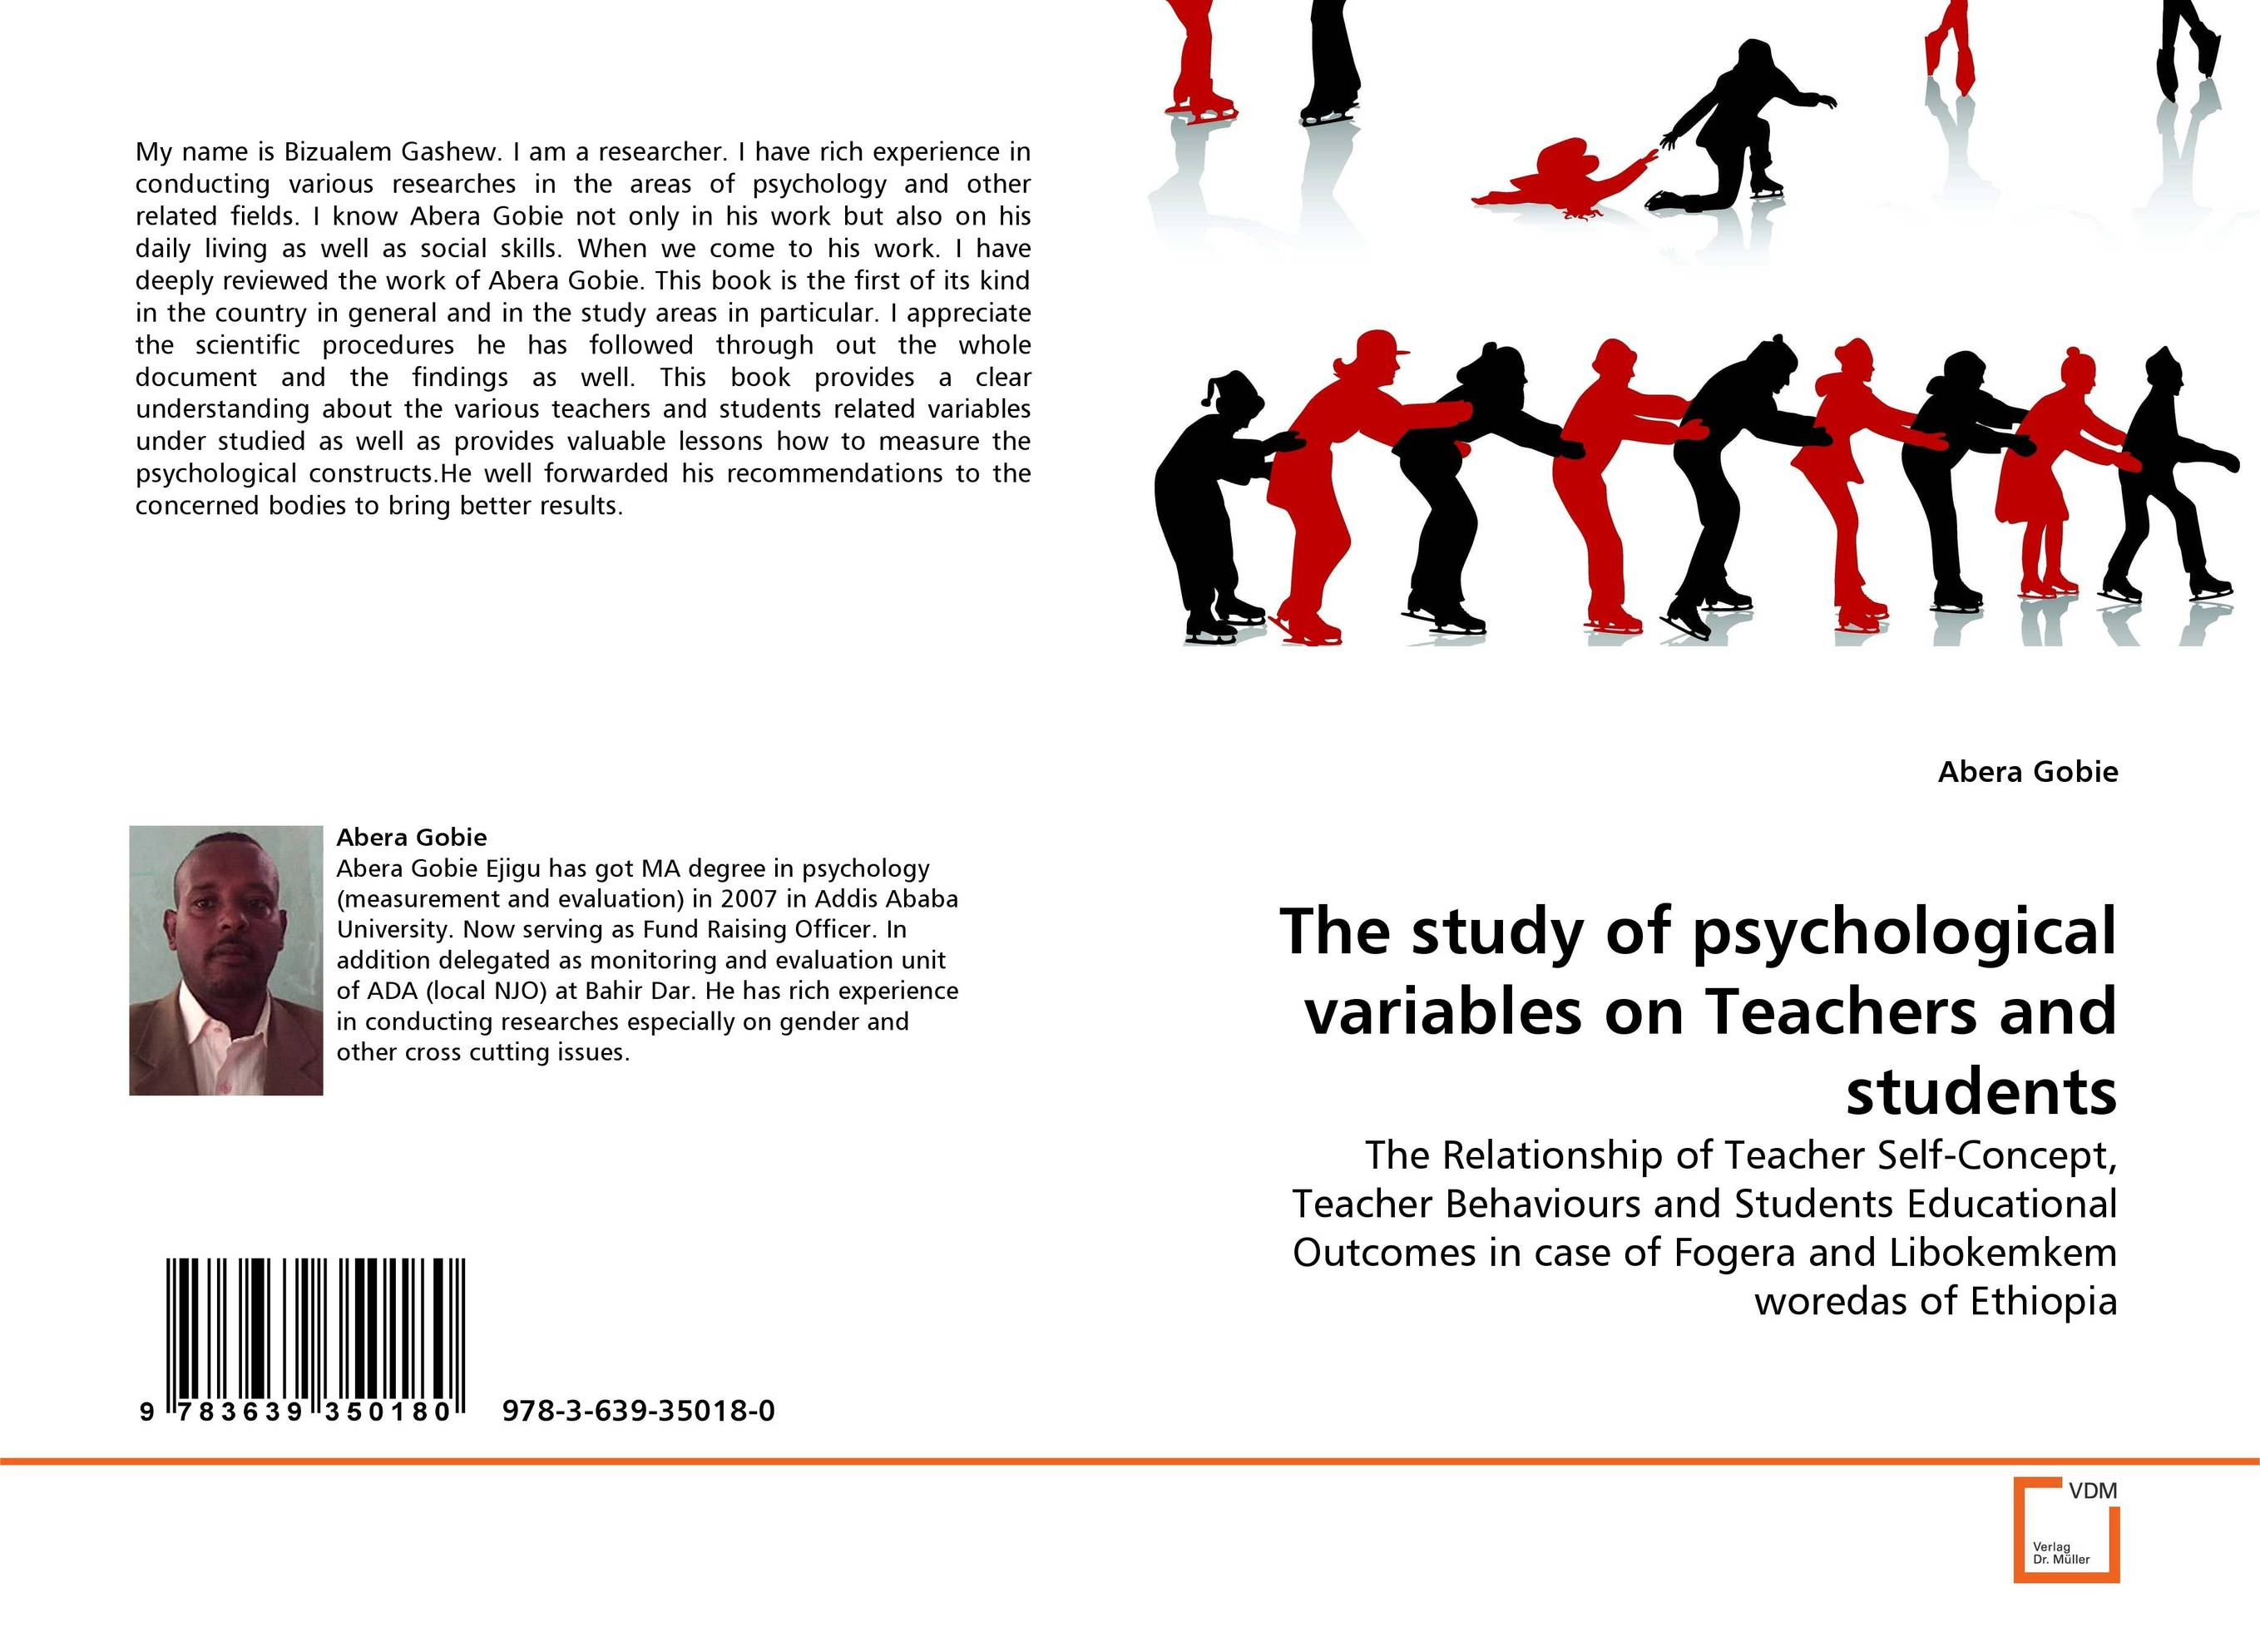 The study of psychological variables on Teachers and students the state i am in